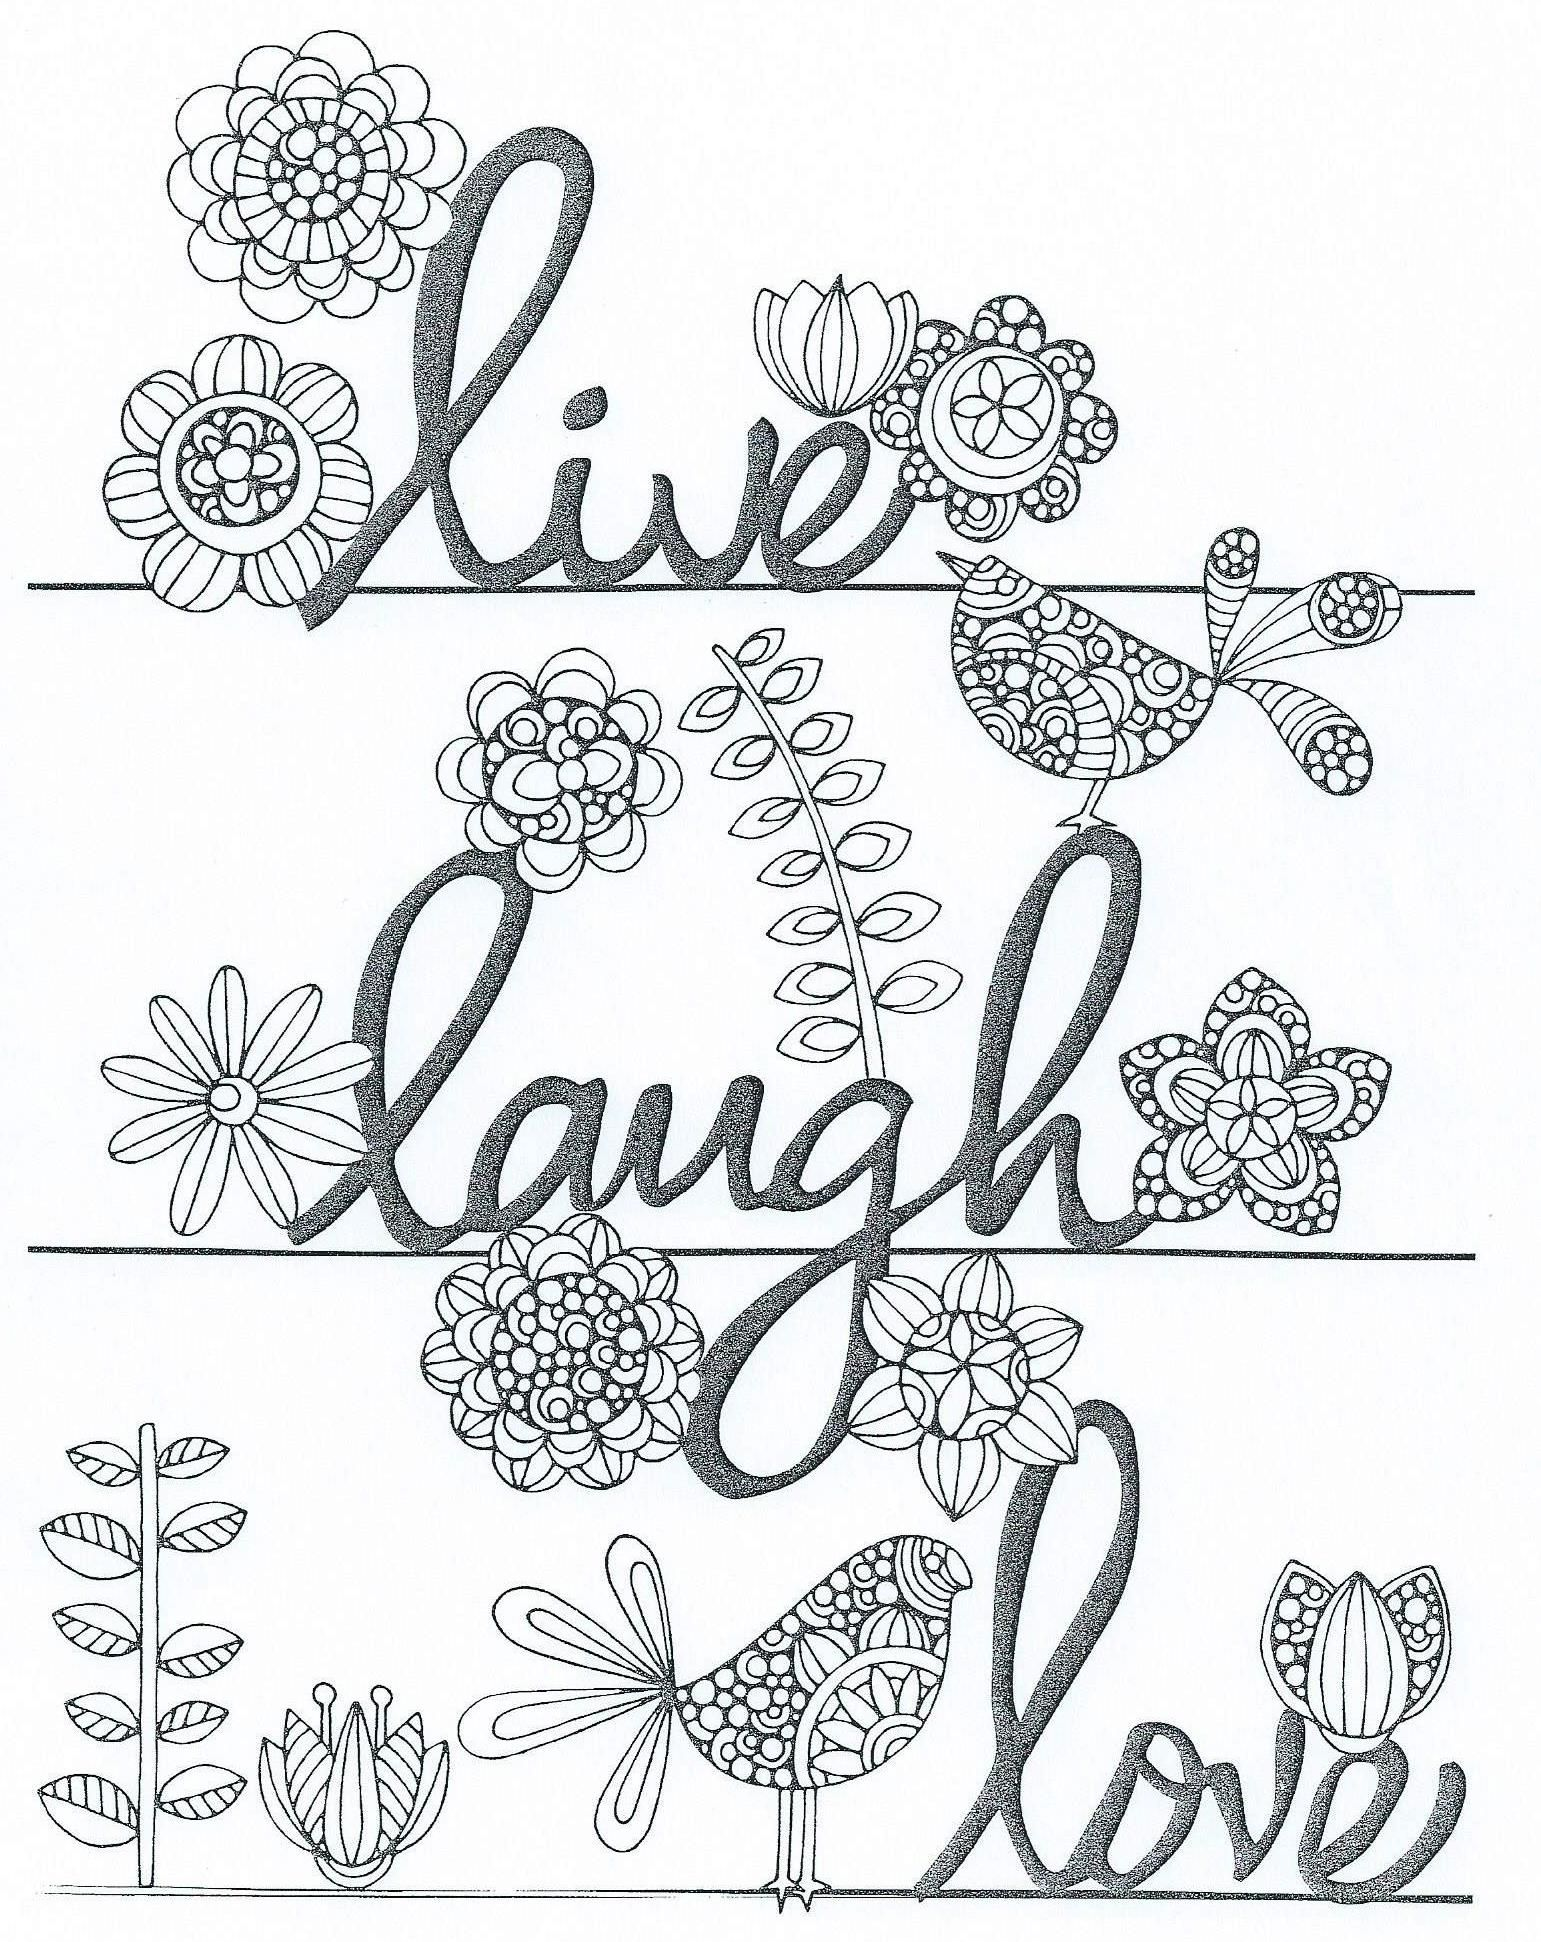 live laugh love | Words Coloring Pages for Adults | Pinterest ...